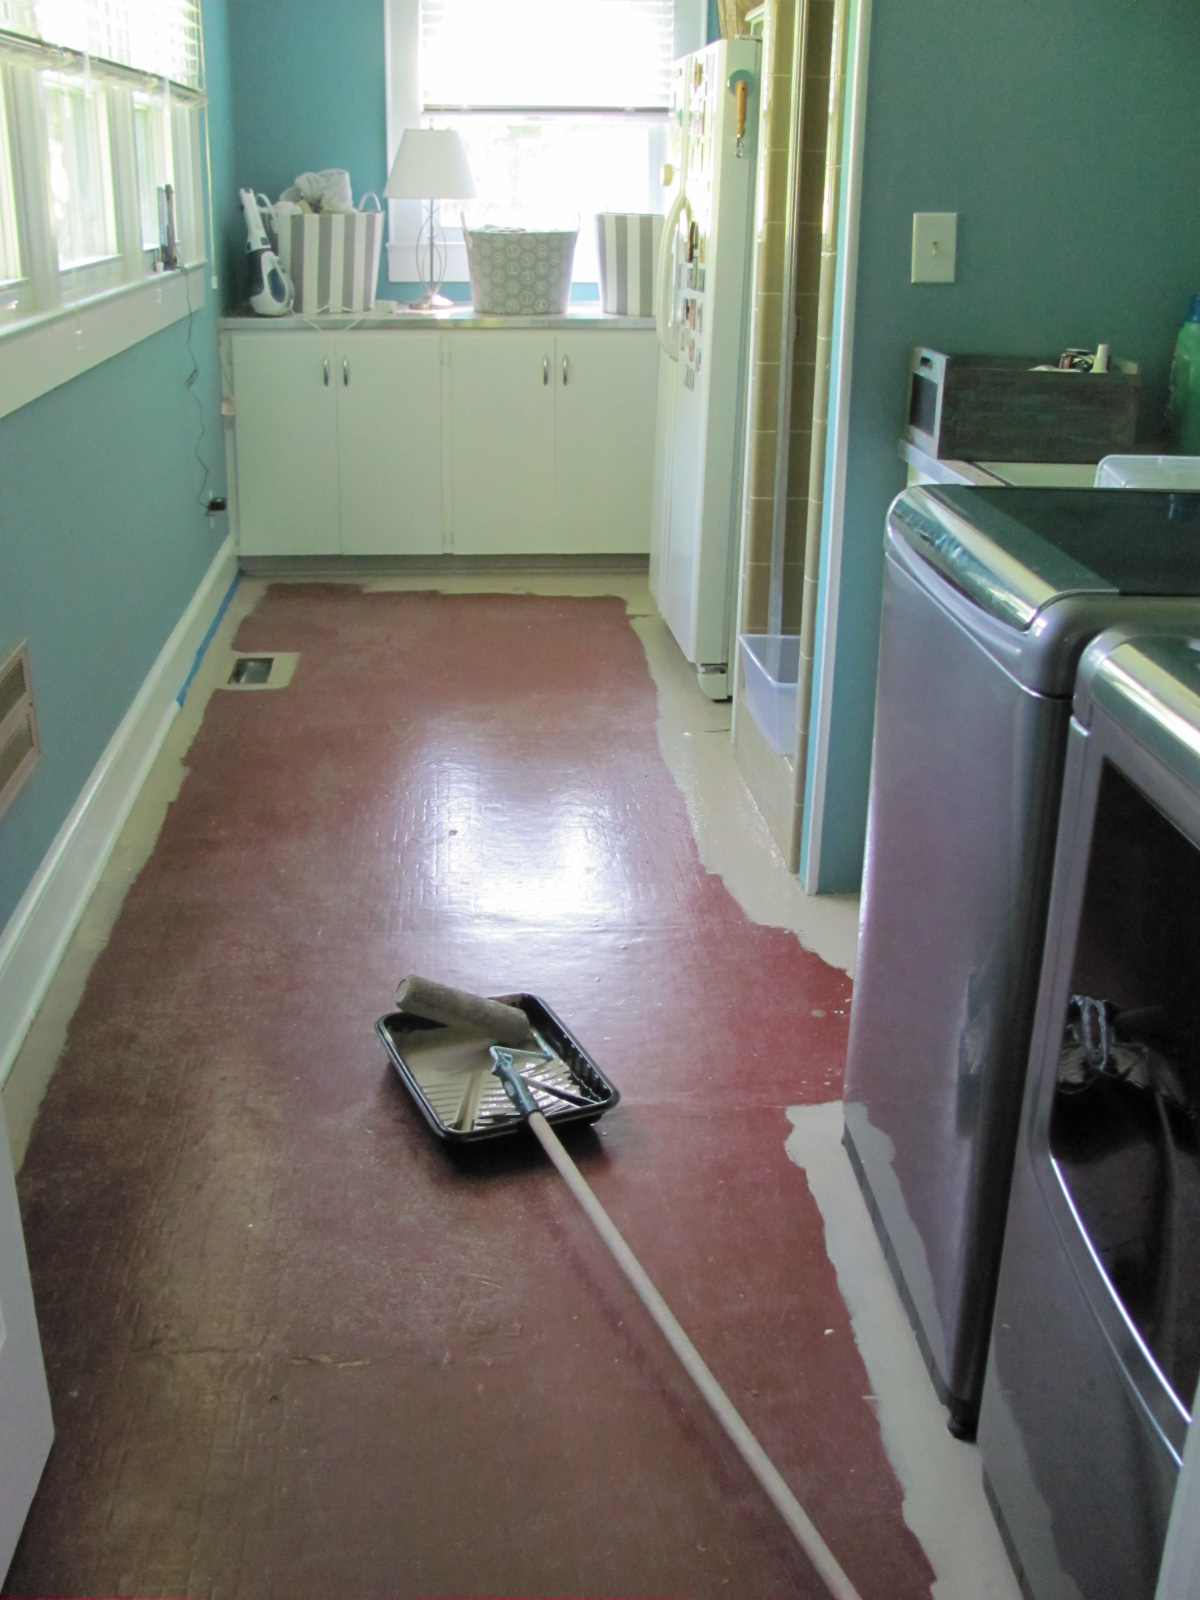 Laundry Room before redesign and organization